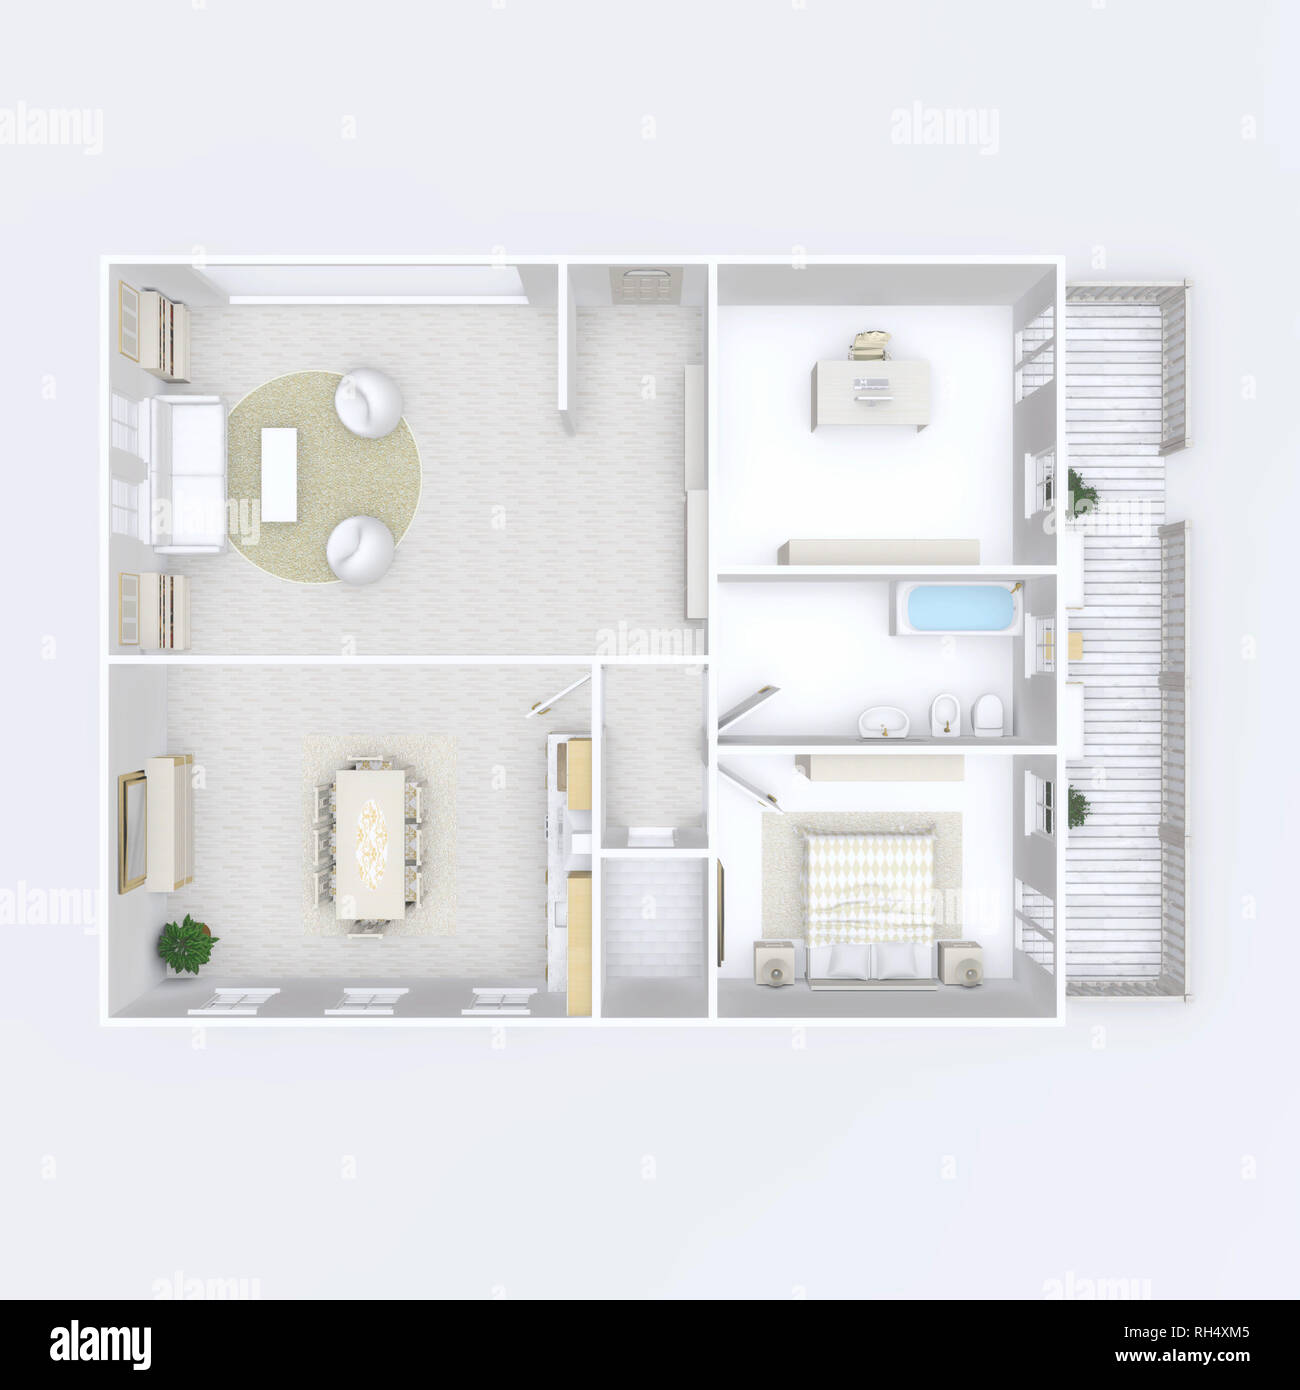 3d interior illustration rendering of furnished home apartment - Stock Image